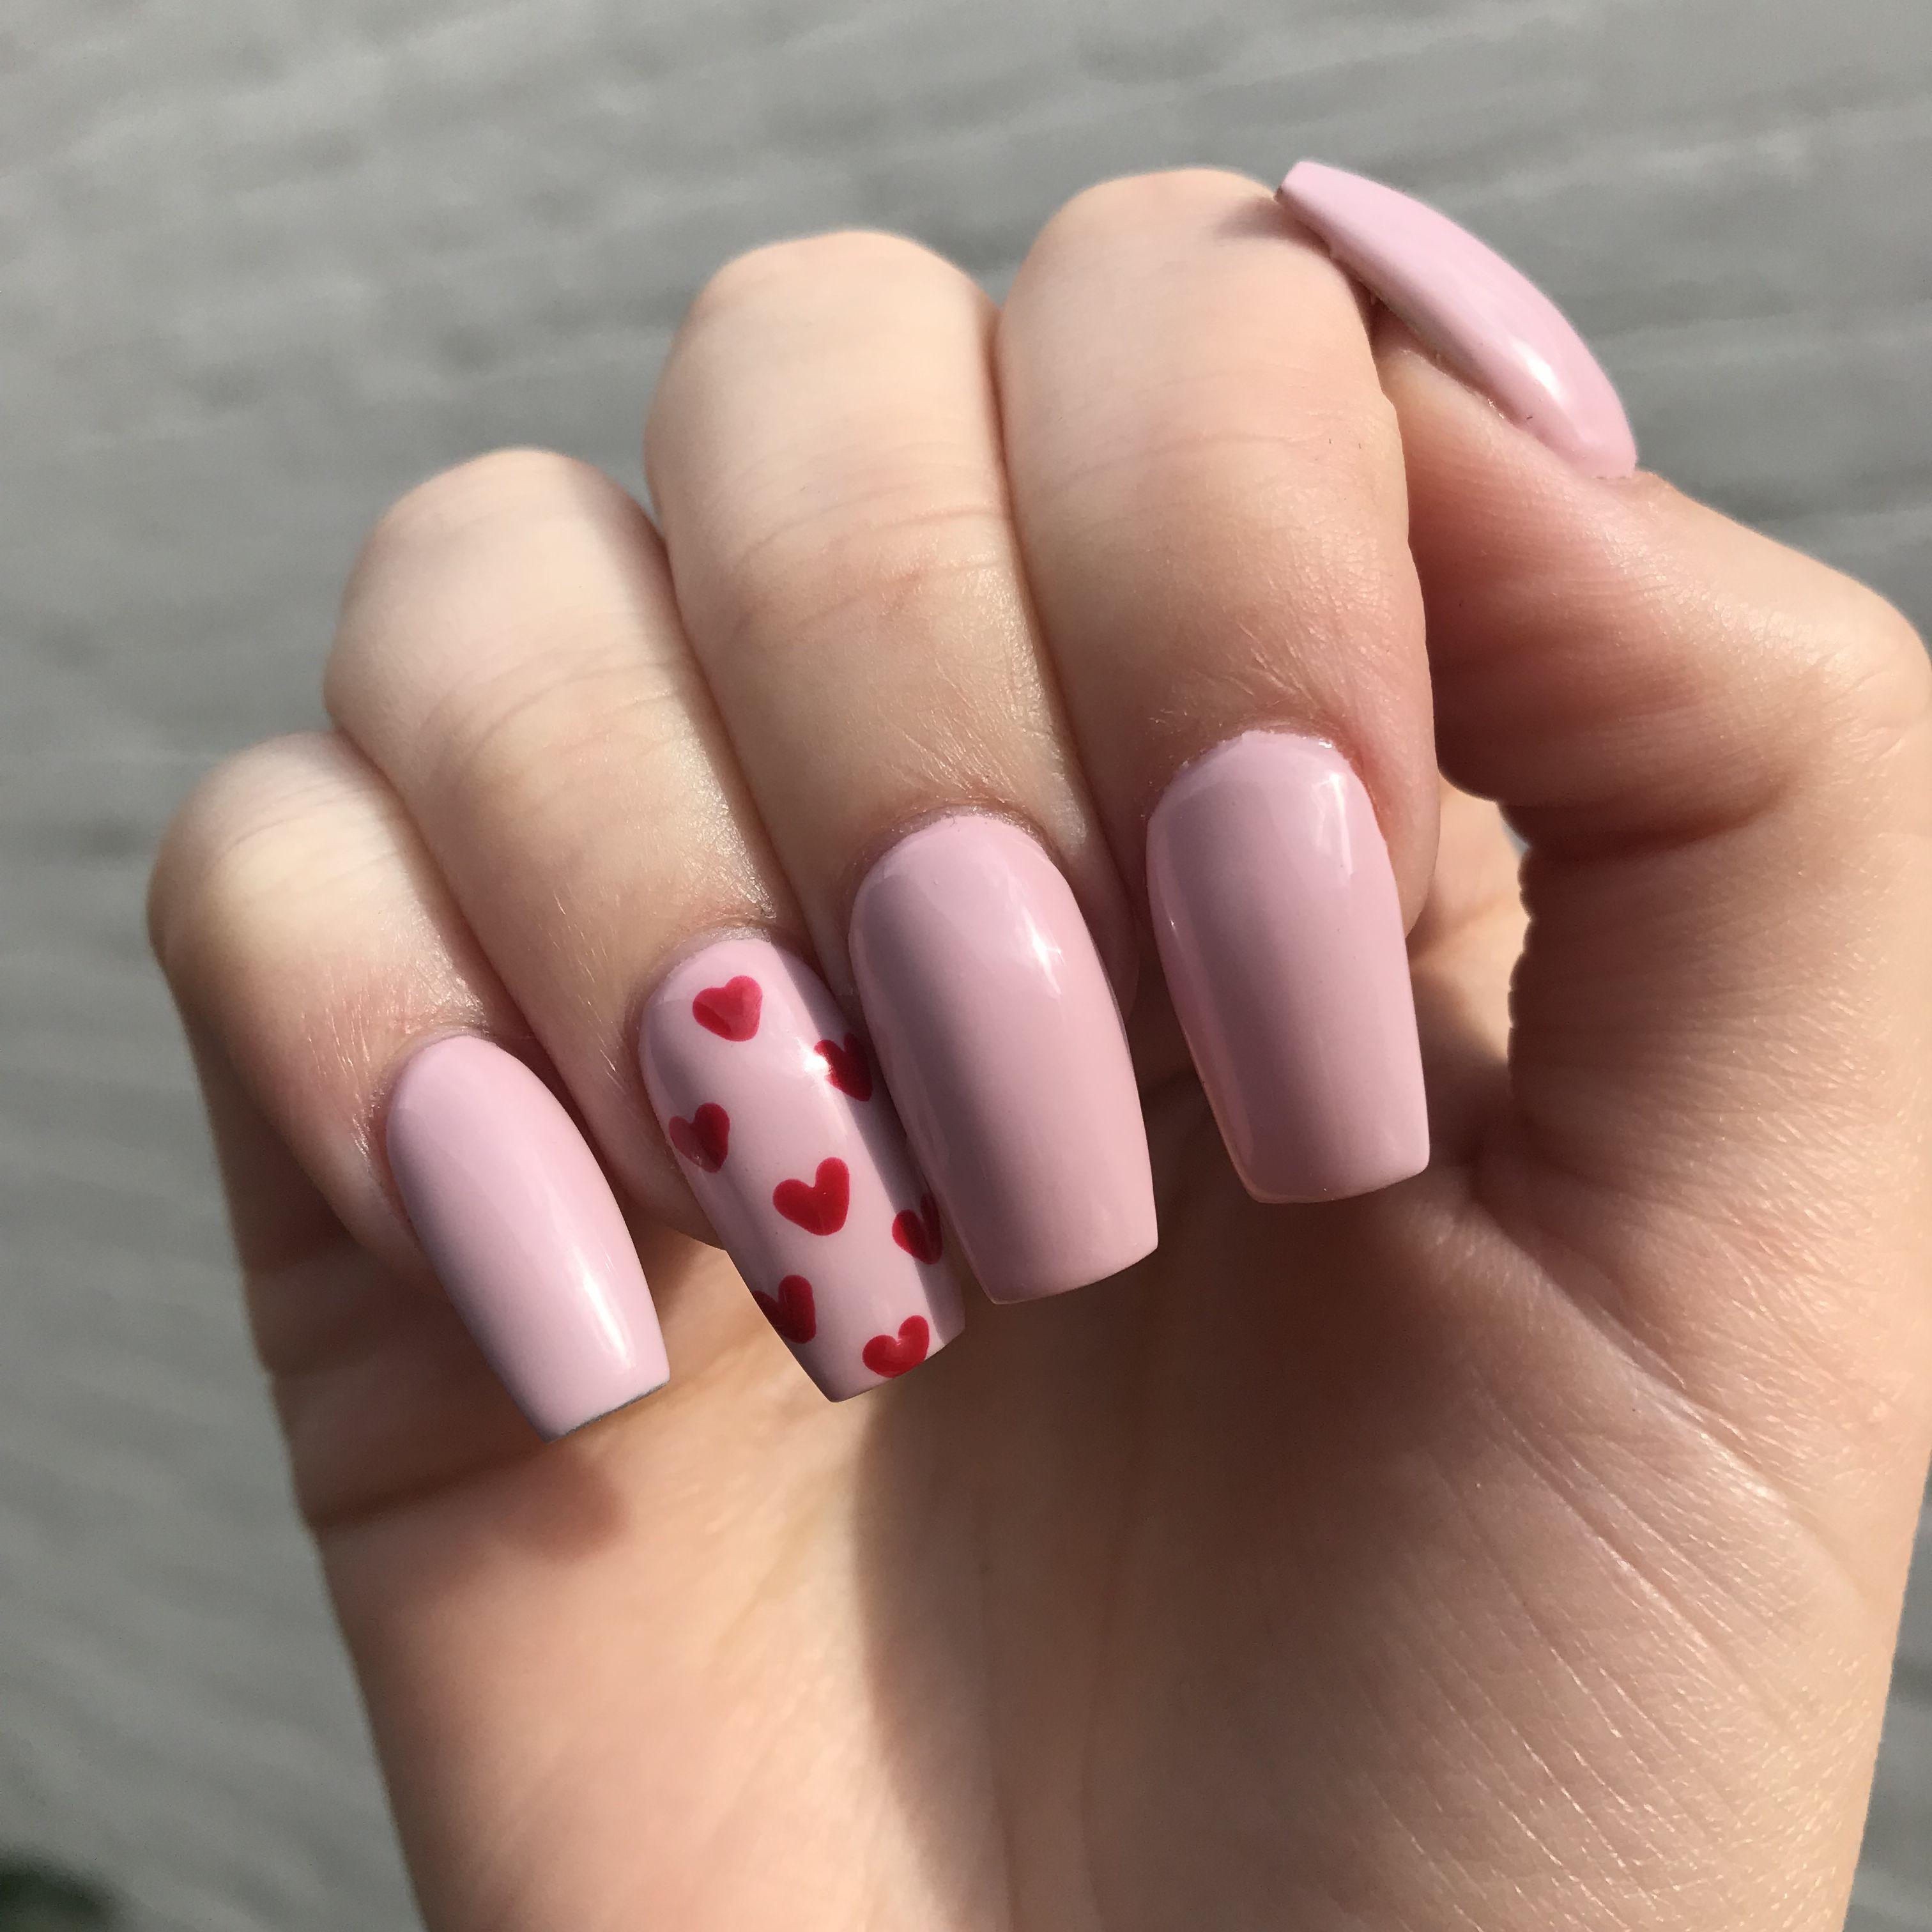 #Cute #hearts #nails #pink #red Cute pink and red hearts nails         Acrylic nails with baby pink gel polish and red hearts. Nails by Bethany Moreton @nailsbybeff #acyrlicnails #gelnails #gelpolish #thegelbottle #prettynails #dopenails